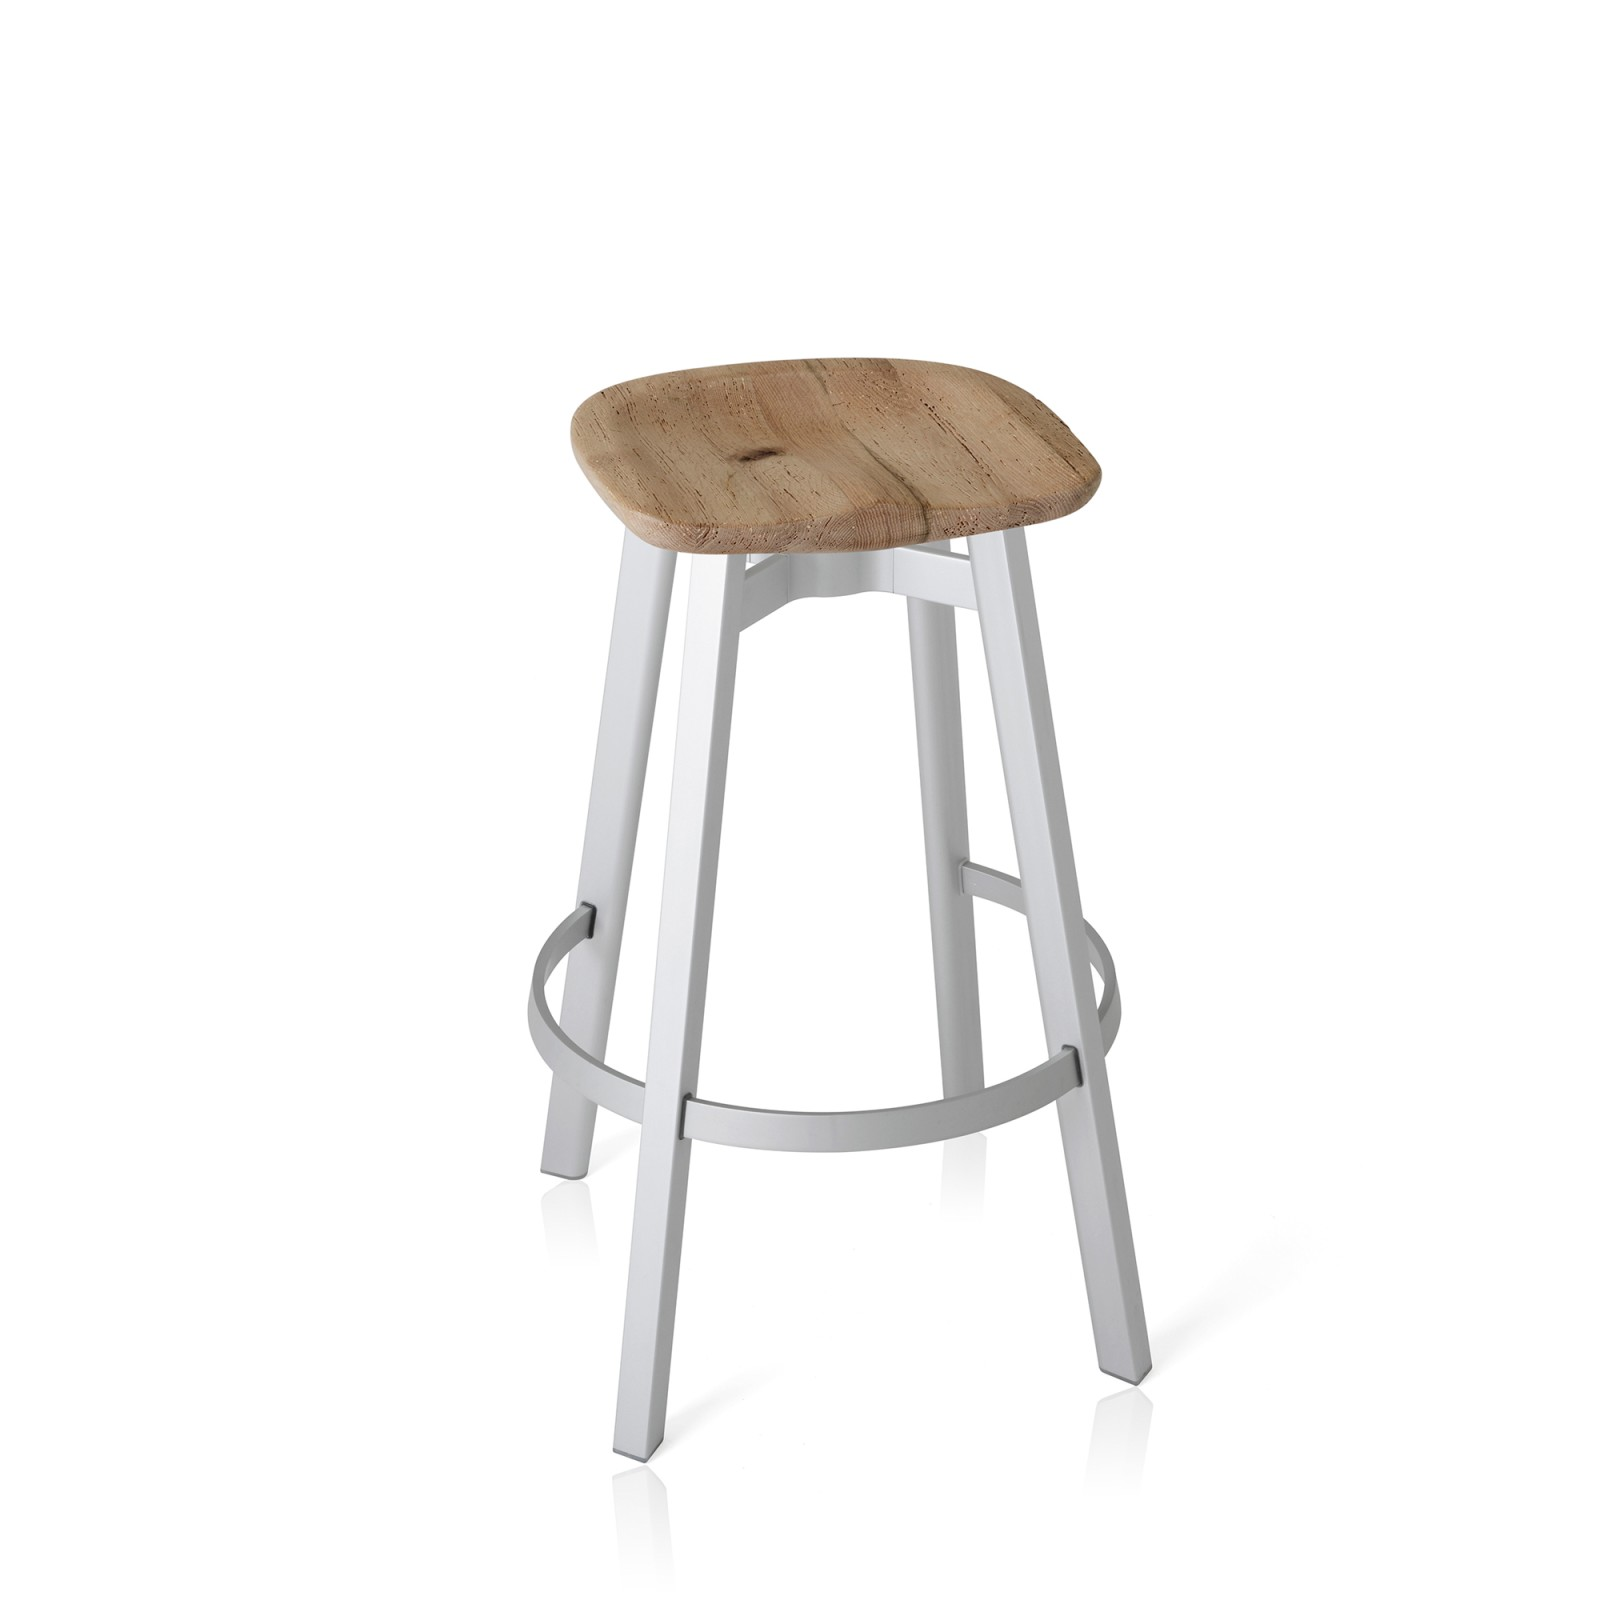 Su Bar Stool Aluminium, Oak